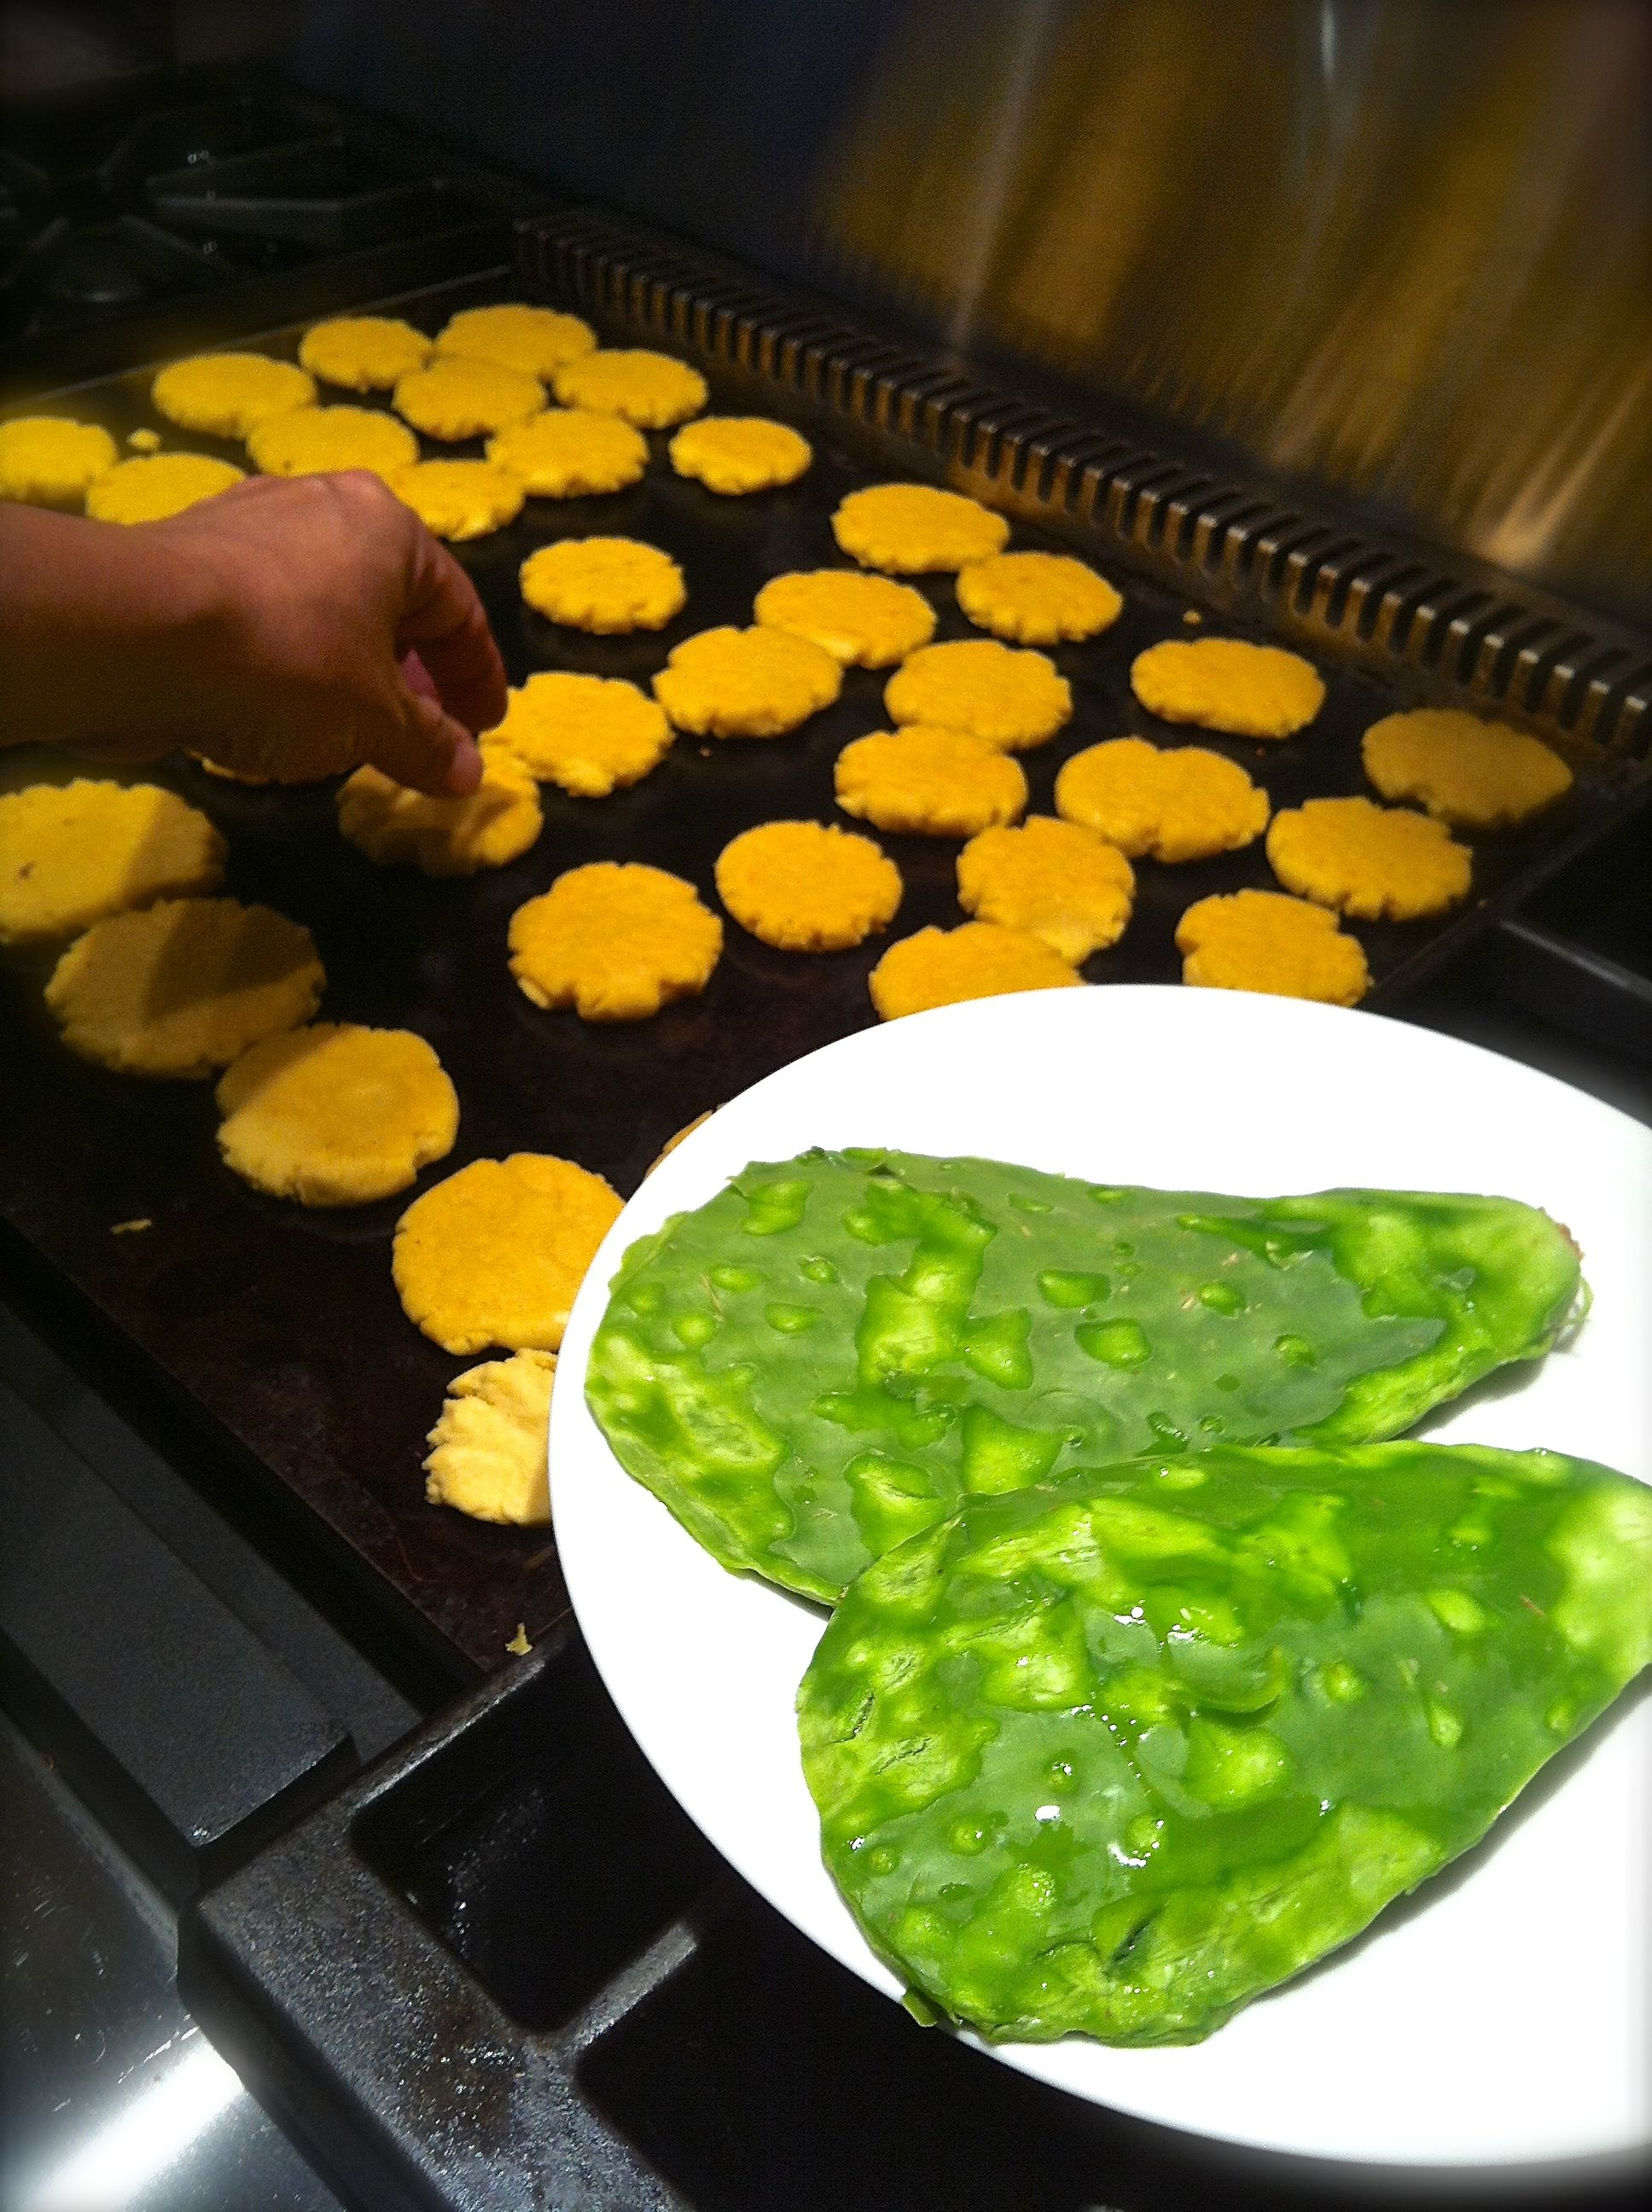 Texas Mexican cooking traditional gorditas with cactus